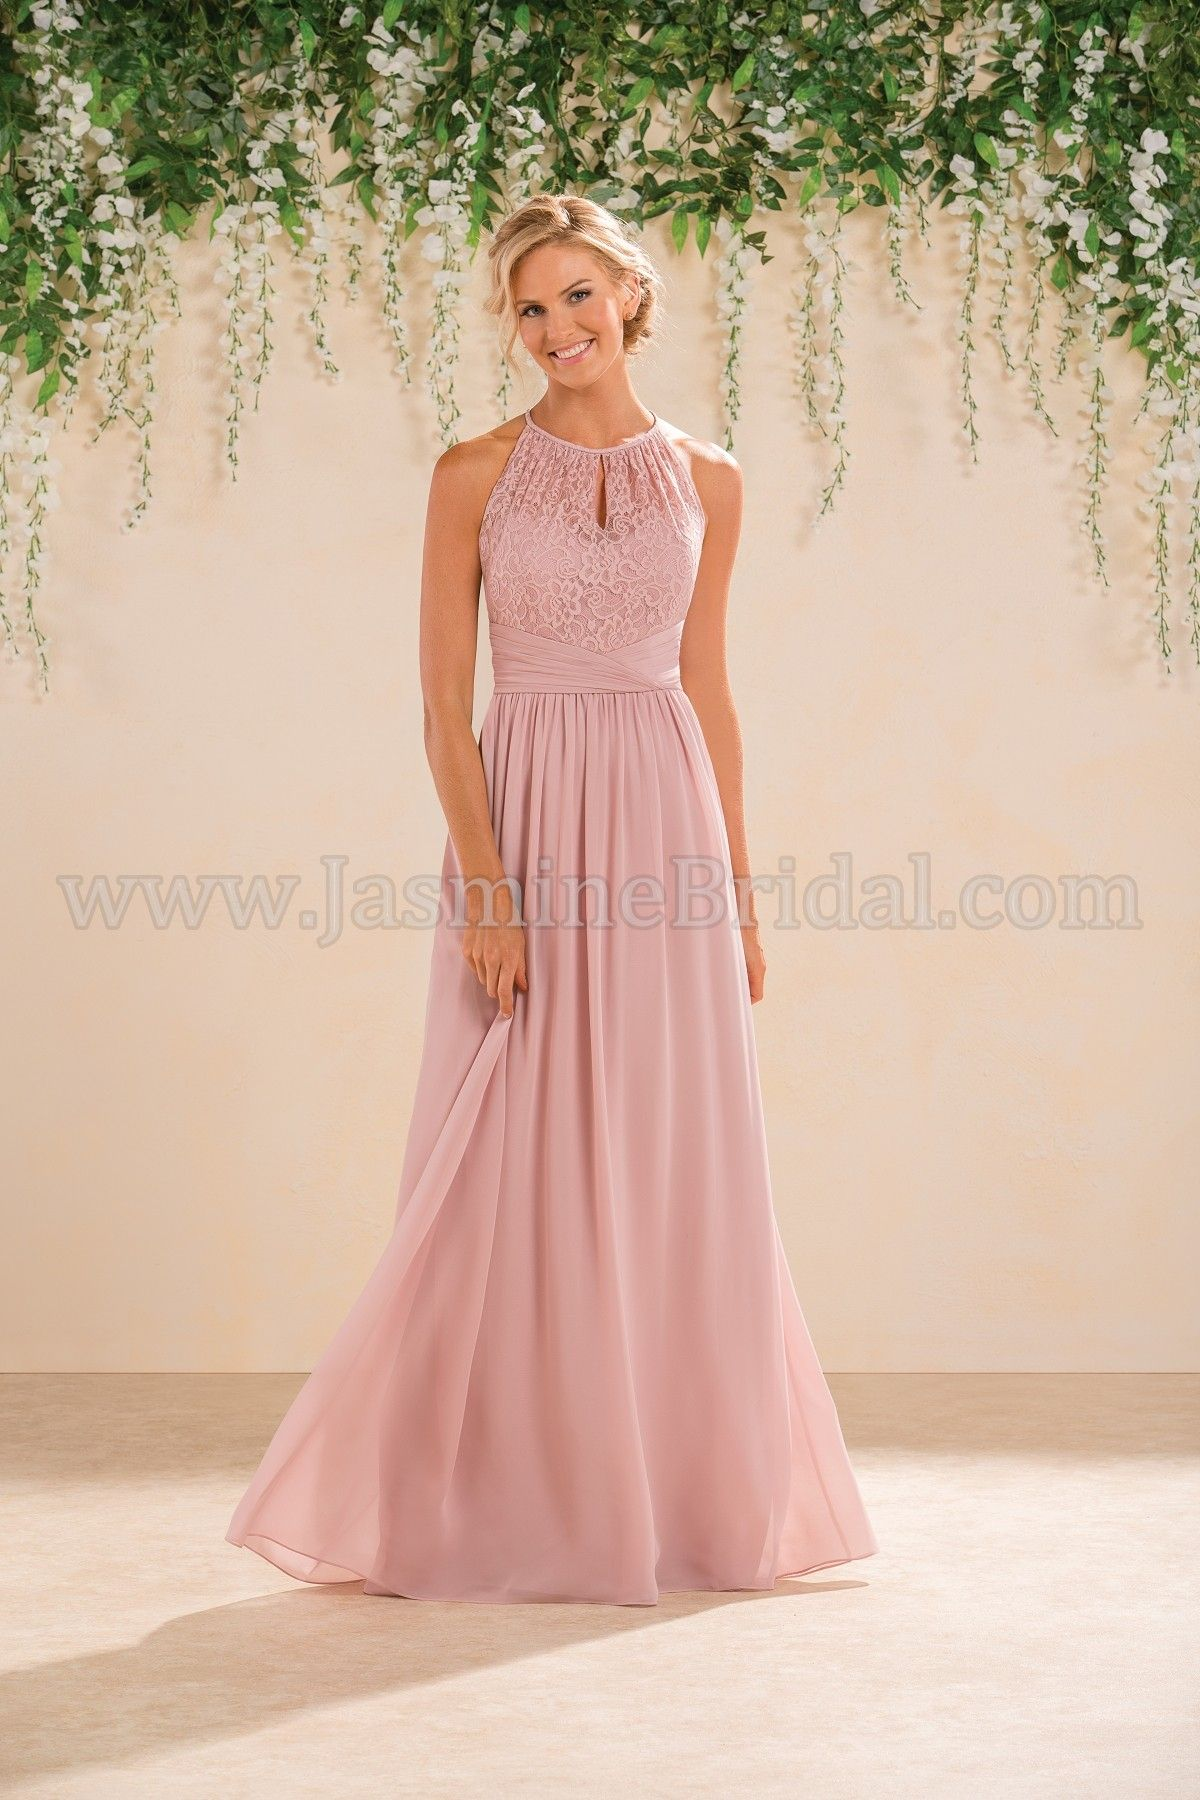 Jasmine Bridal Long High Neck Lace Poly Chiffon Bridesmaid Dress